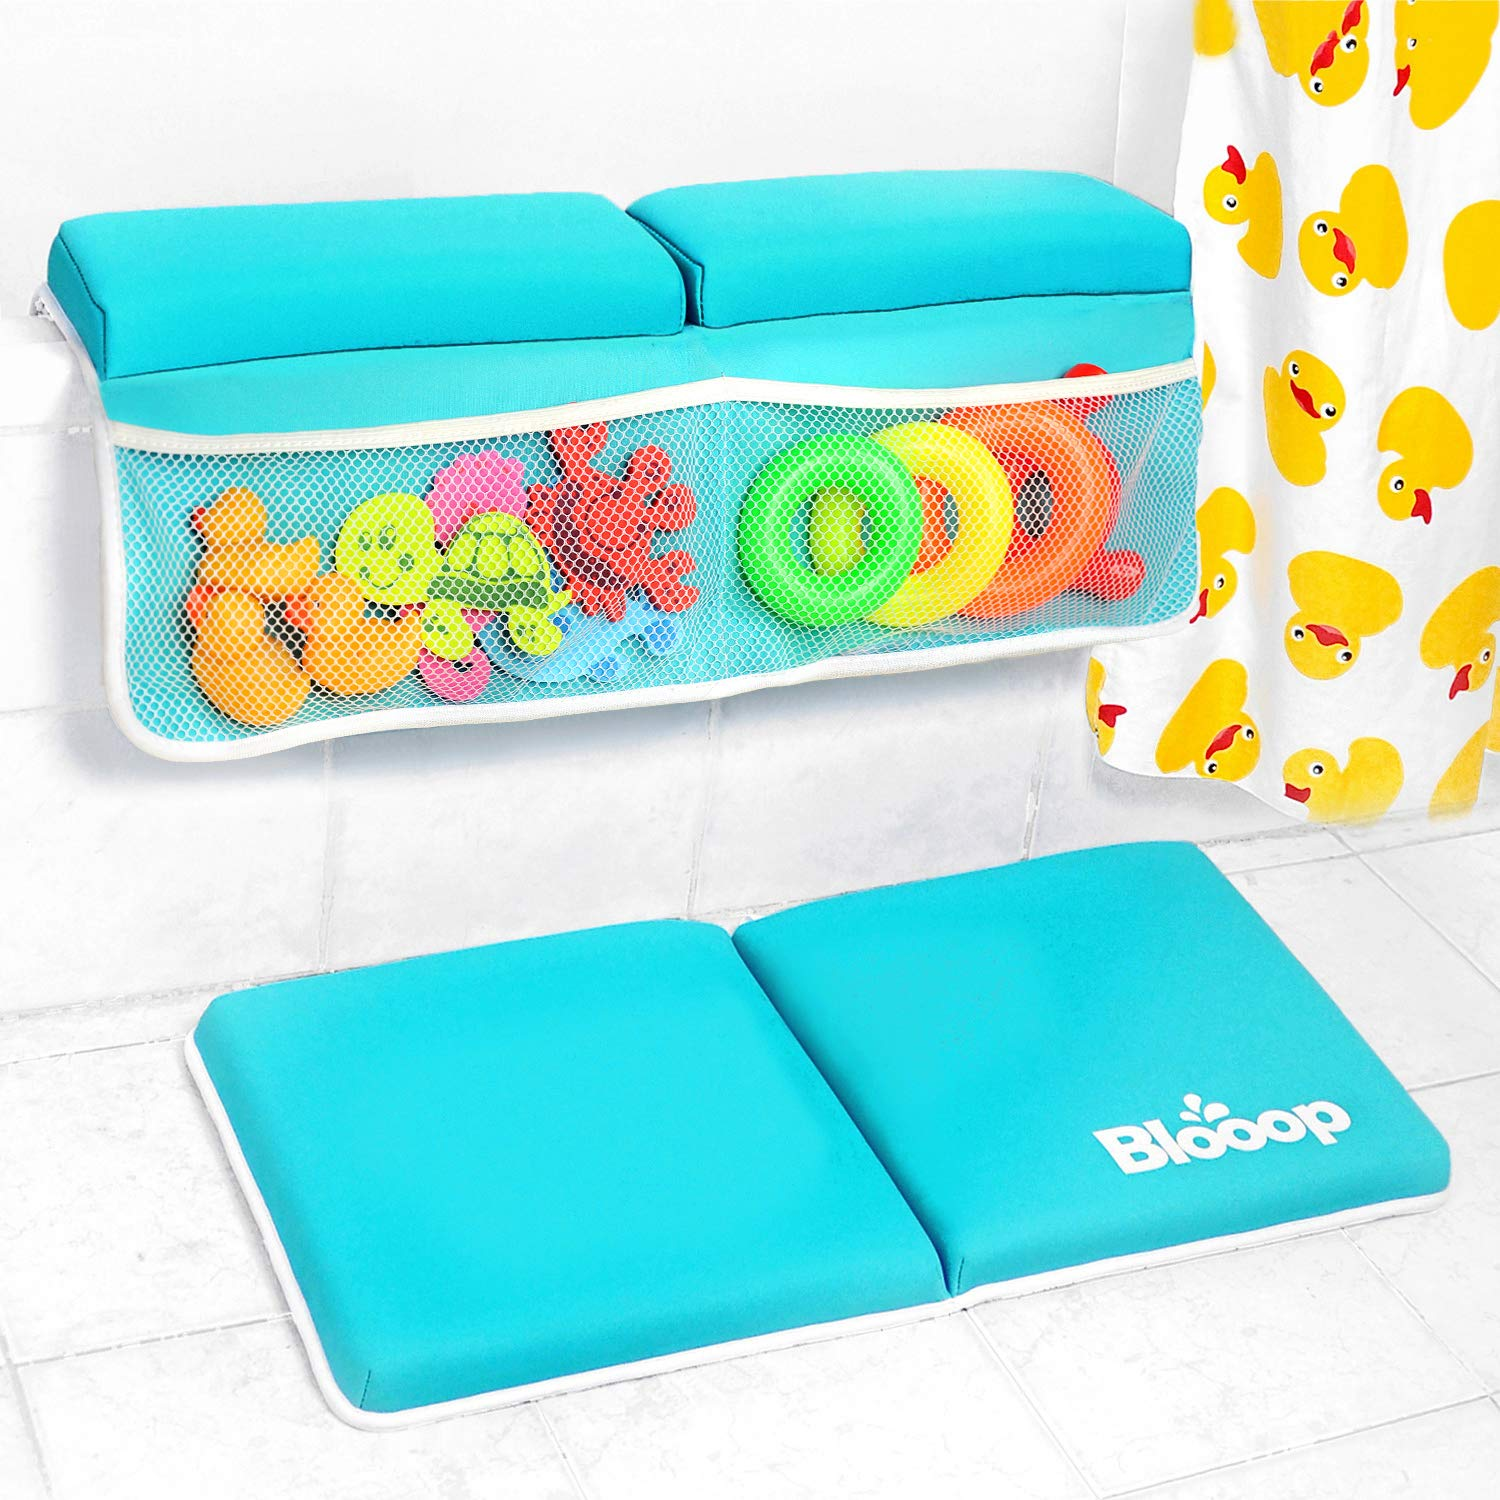 Bath Kneeler with Elbow Rest Pad Set (2-Piece), X-Long, Thick, Knee Cushioned Bathtub Support, Non-Slip Bottom, 4 Caddy Pockets, Blooop Bath Kneeling Pad by Blooop